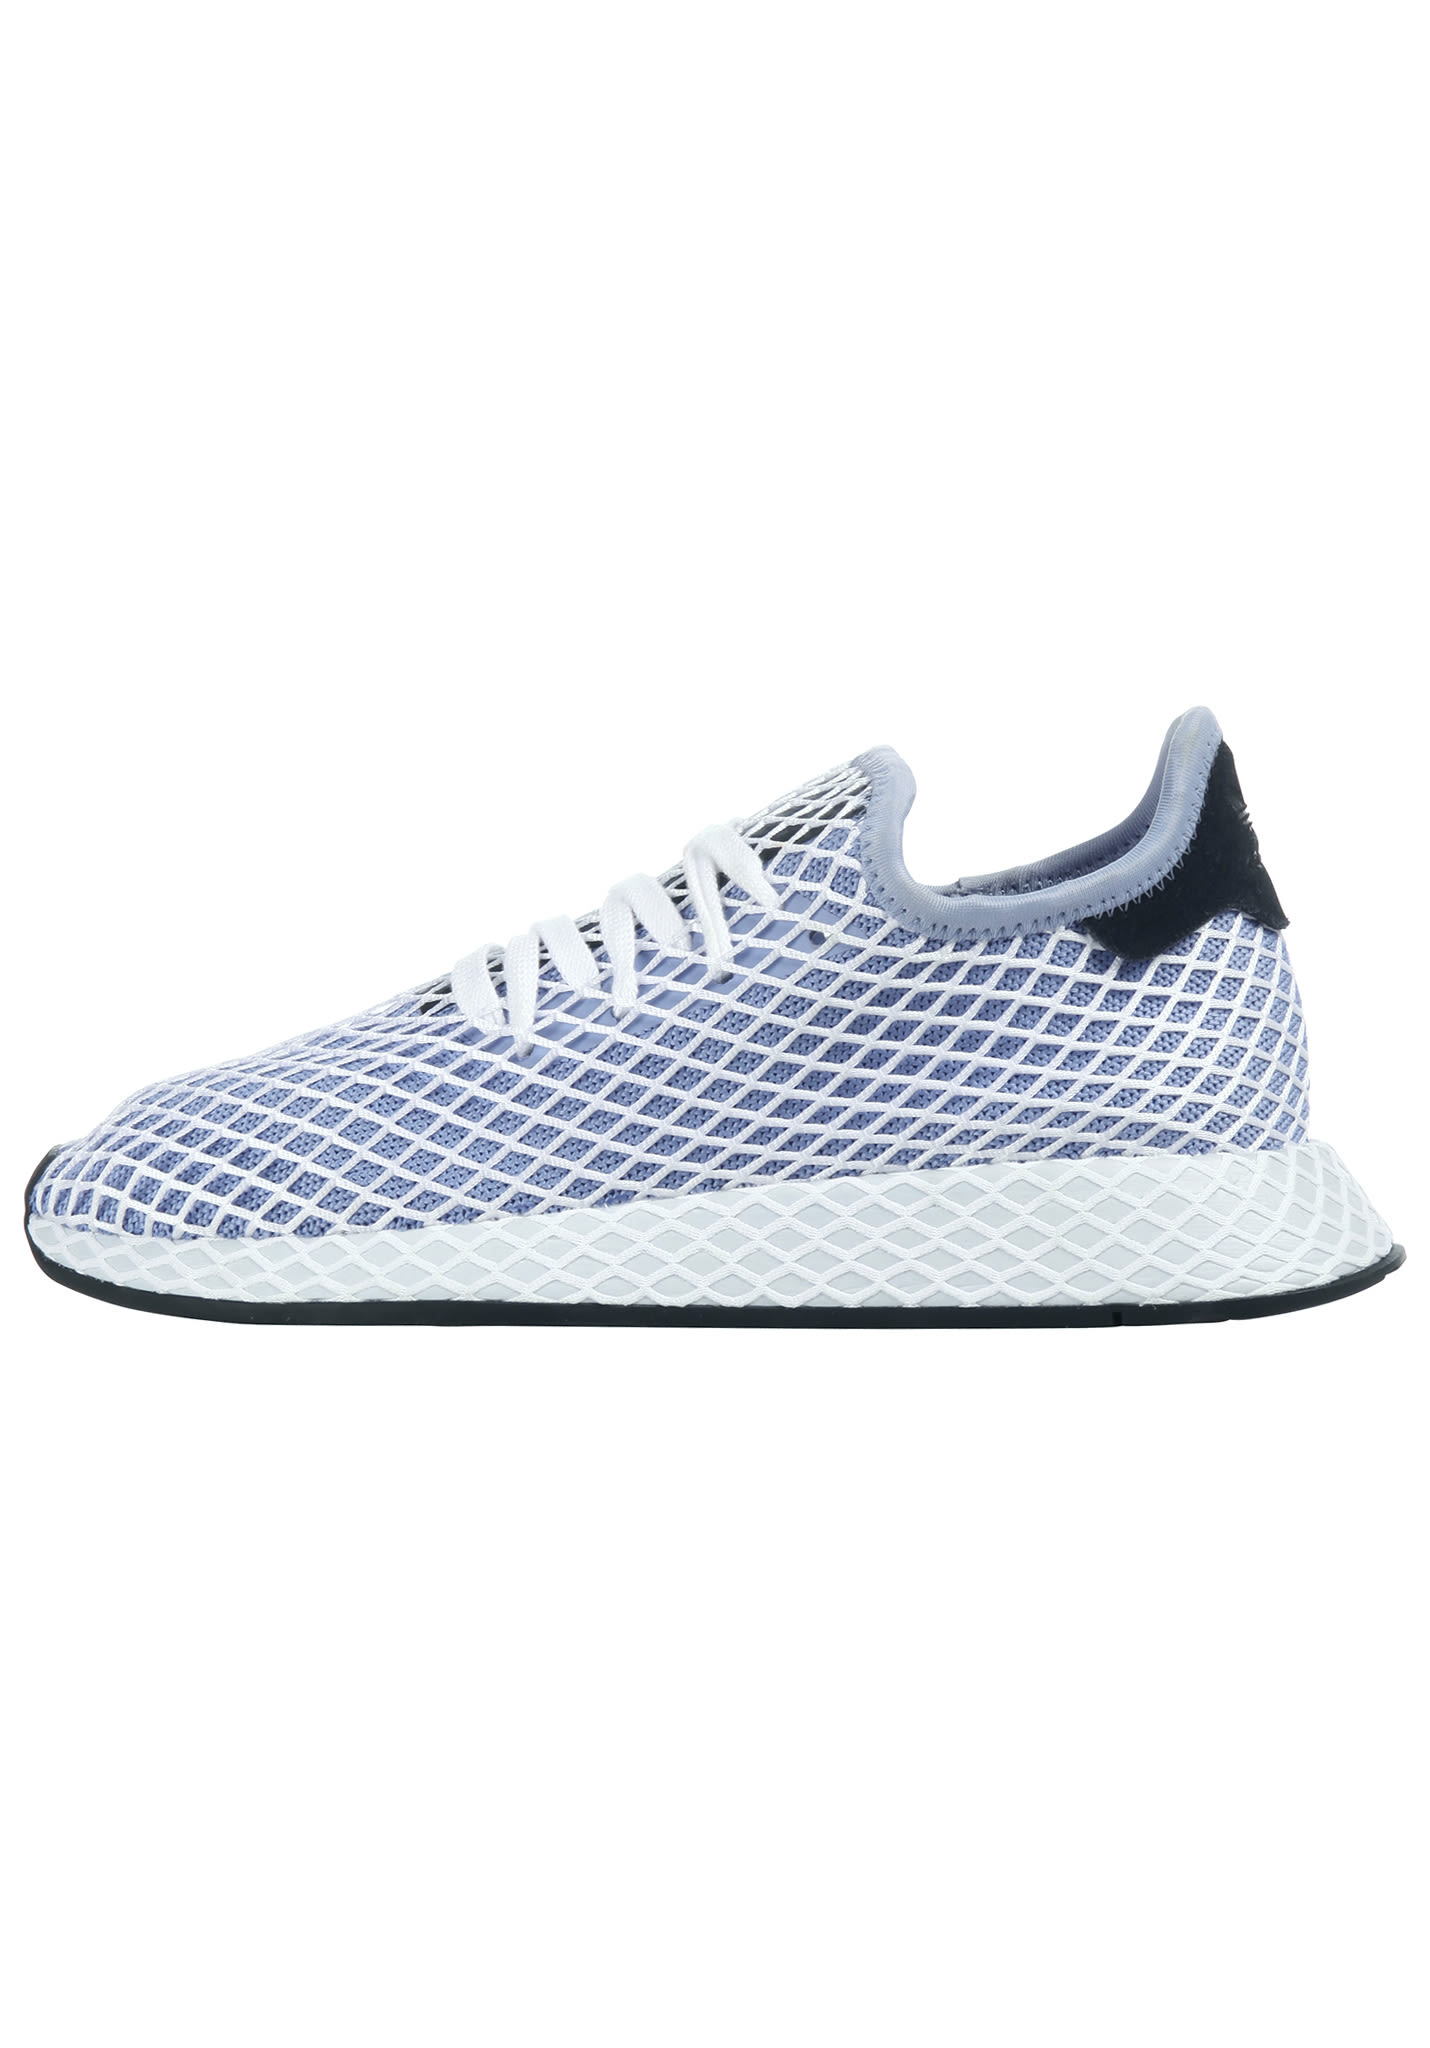 9783a0ca58a ADIDAS ORIGINALS Deerupt Runner - Sneakers voor Dames - Blauw - Planet  Sports